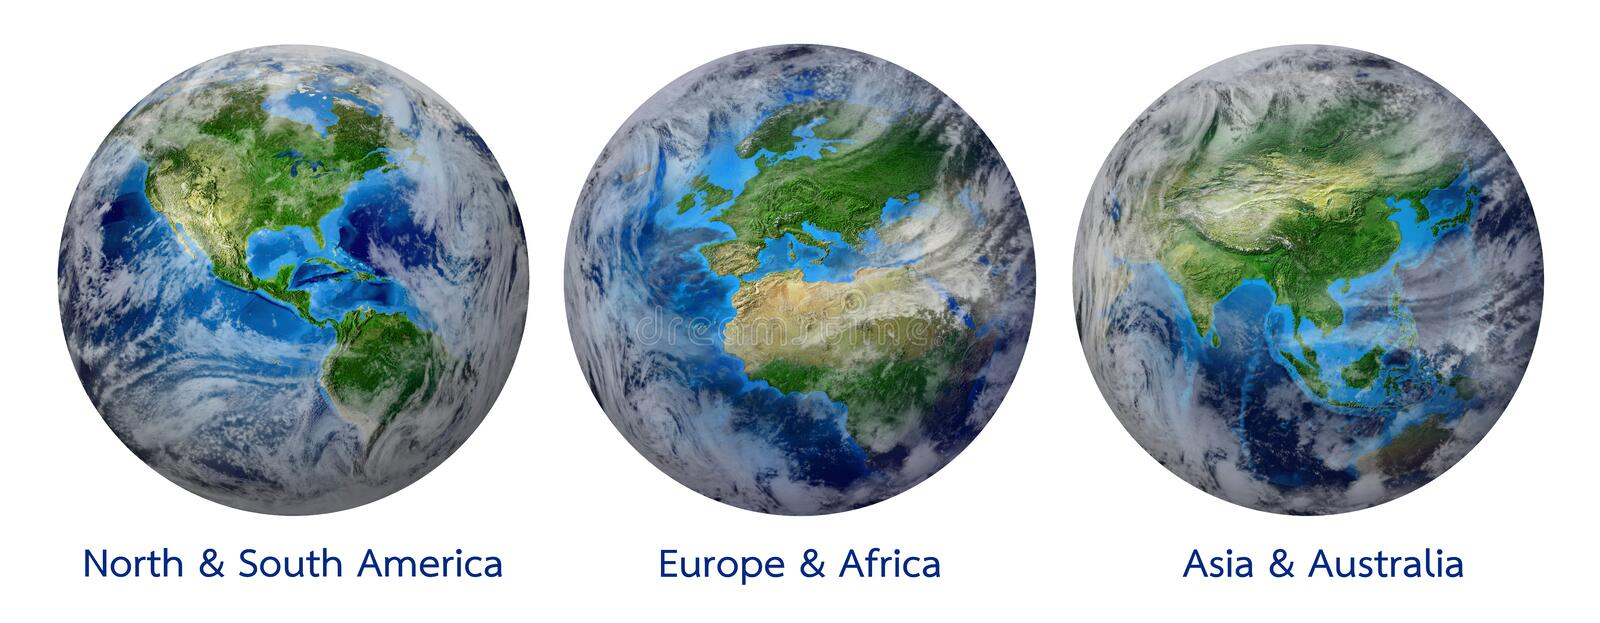 Planet Earth, Global World showing America, Europe, Africa, Asia, continent vector illustration